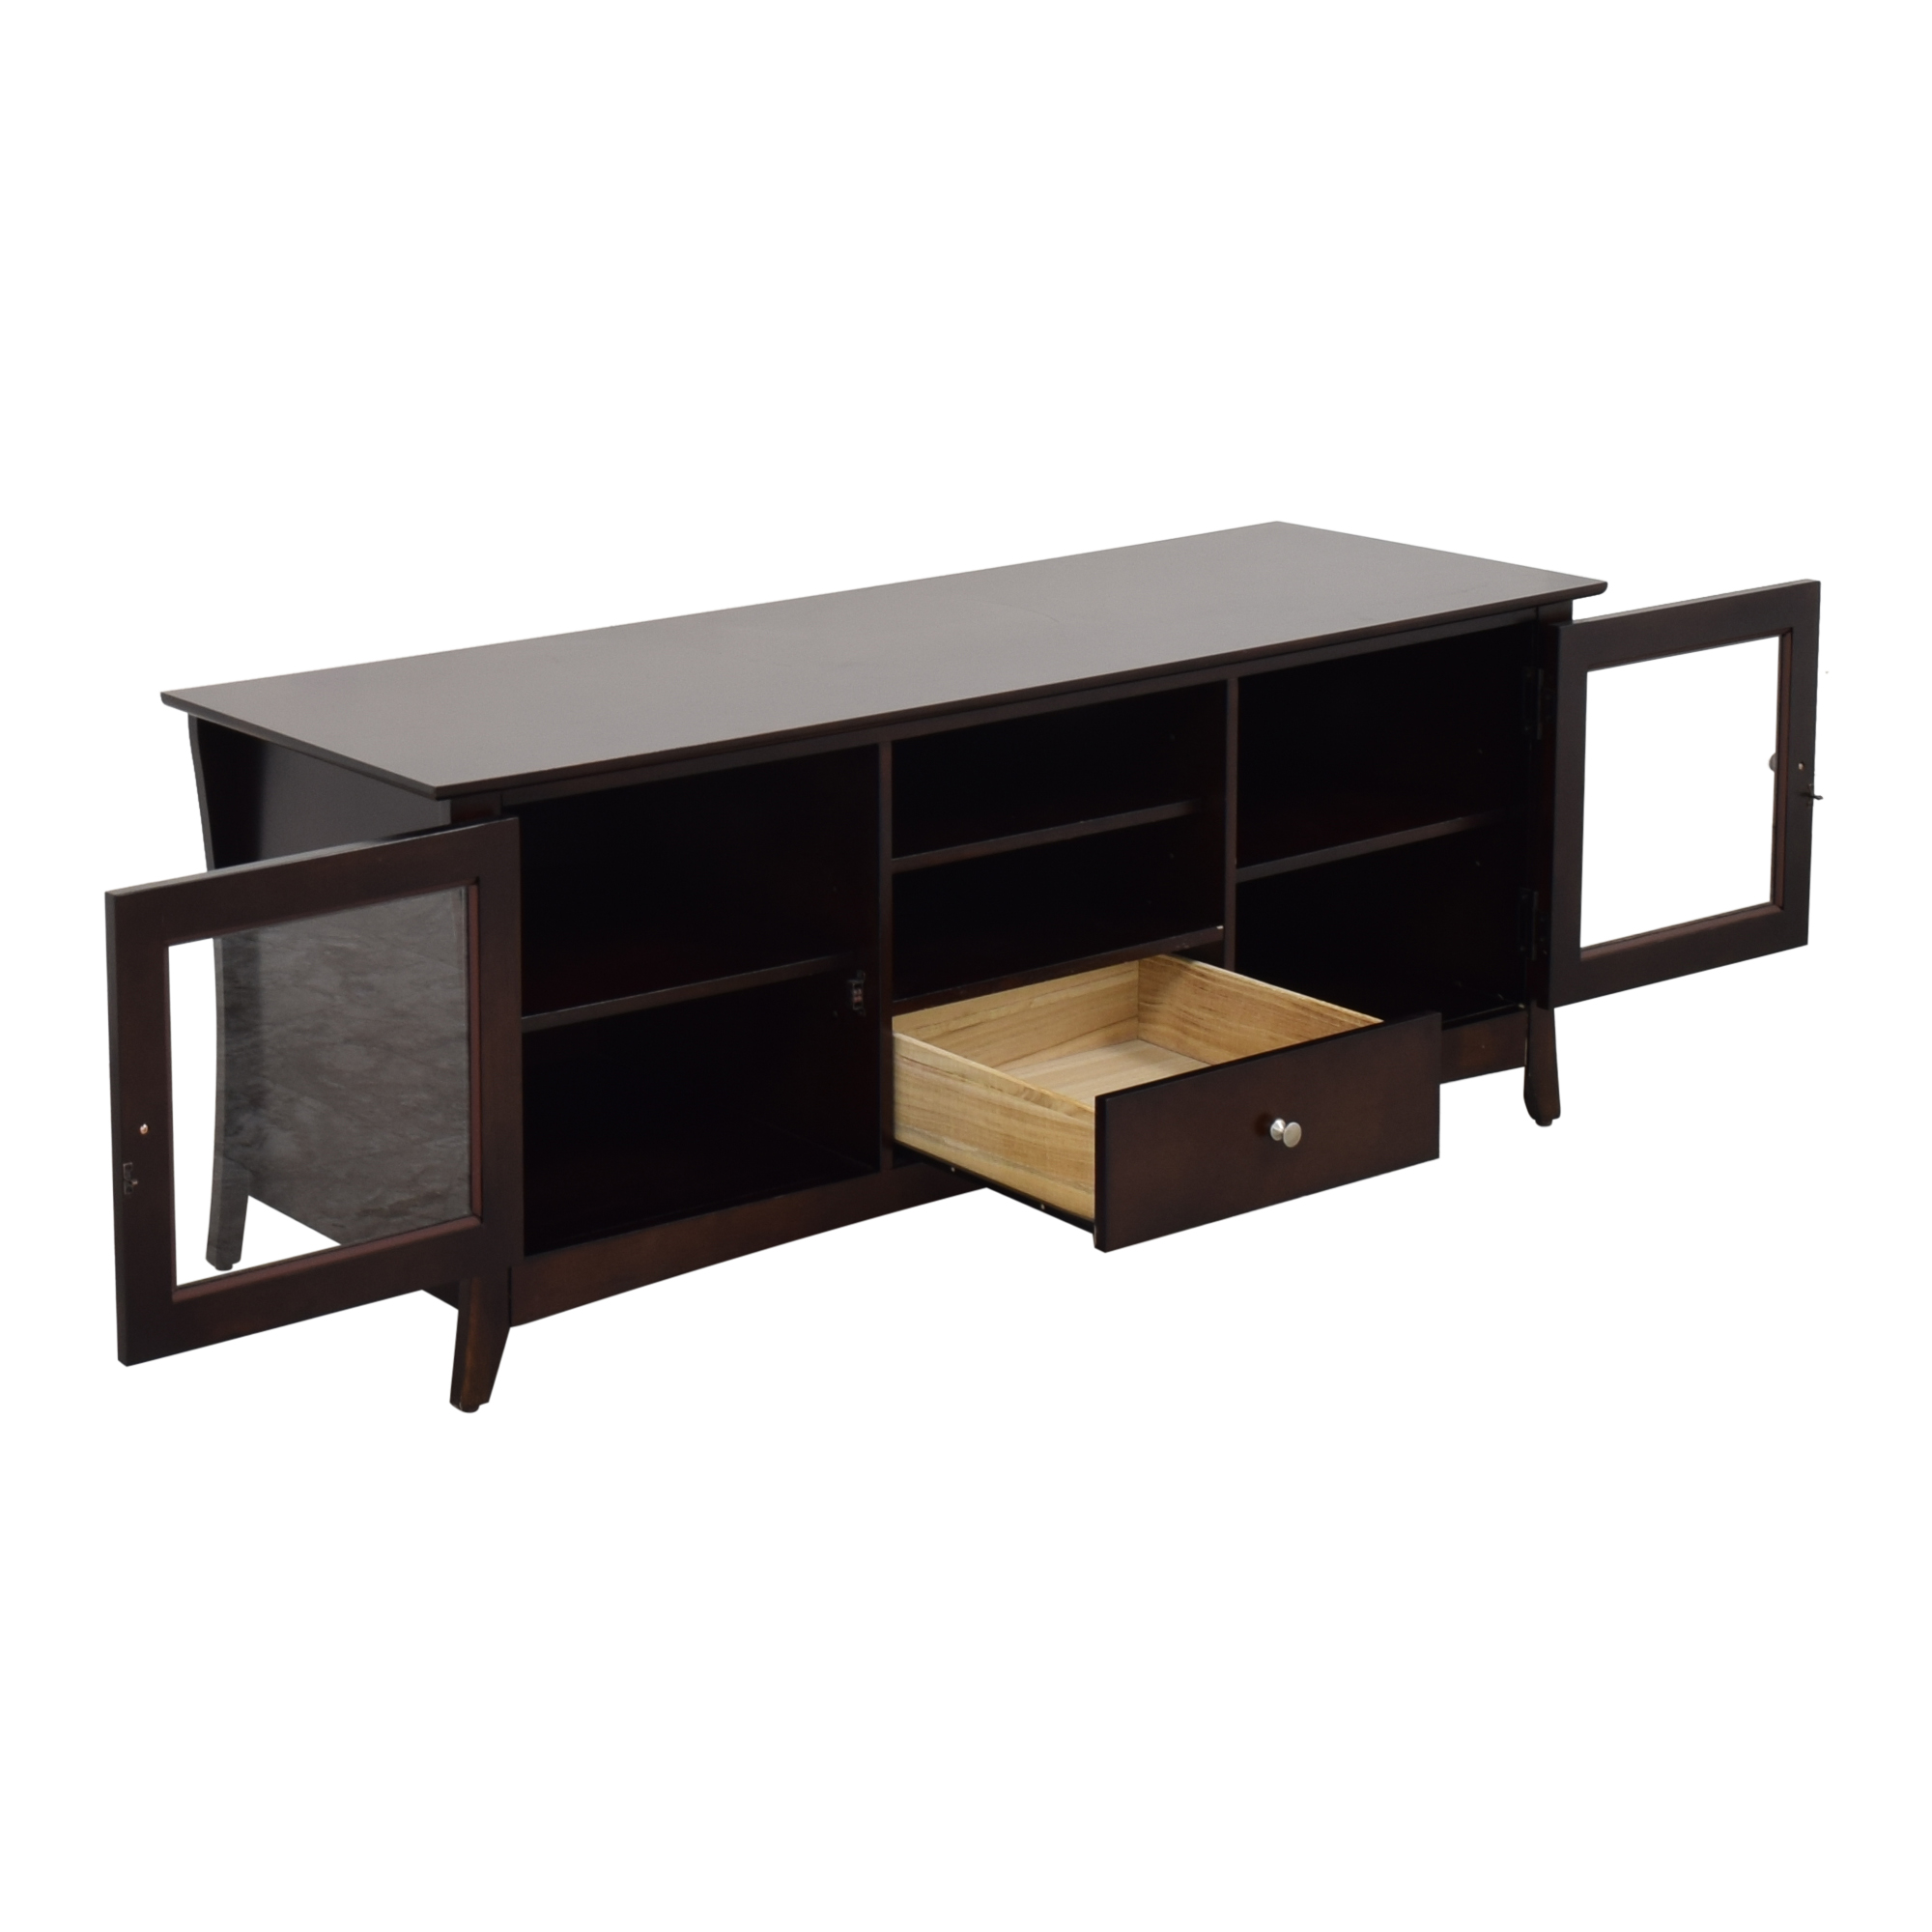 Homelegance Furniture Homelegance Borgeois TV Stand for sale